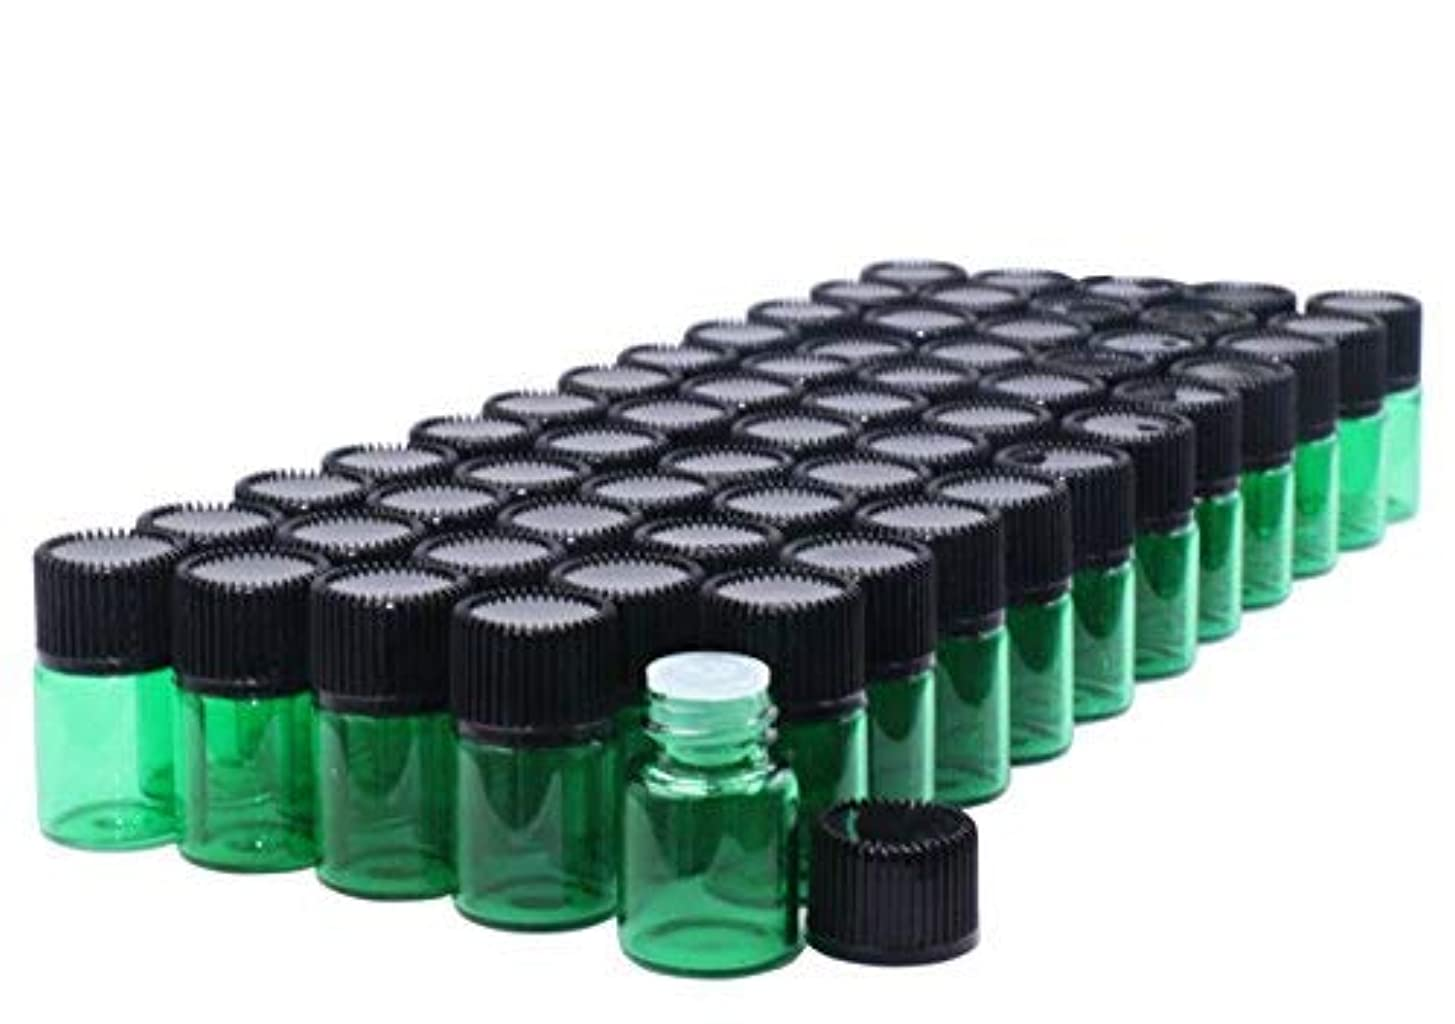 保守可能シソーラス専門Pack of 60,2 ml (5/8 Dram) Green Glass Sample Vials Empty Small glass essential oil sampling Test Bottles with...